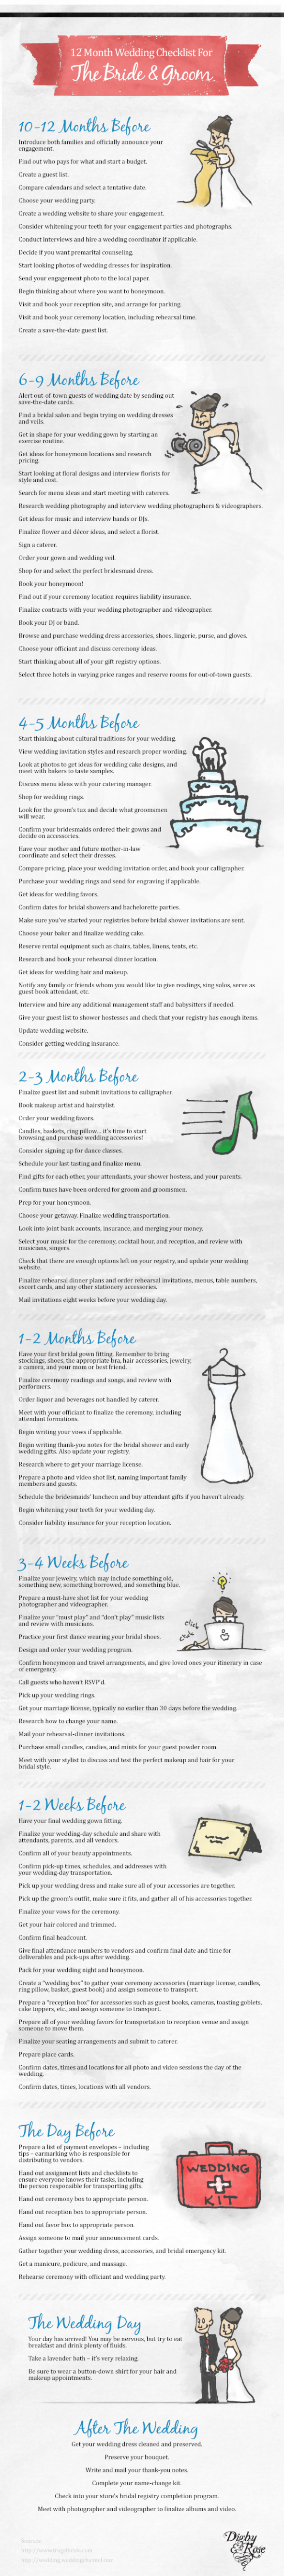 Complete Wedding Planning Guide and Checklist. I'm not